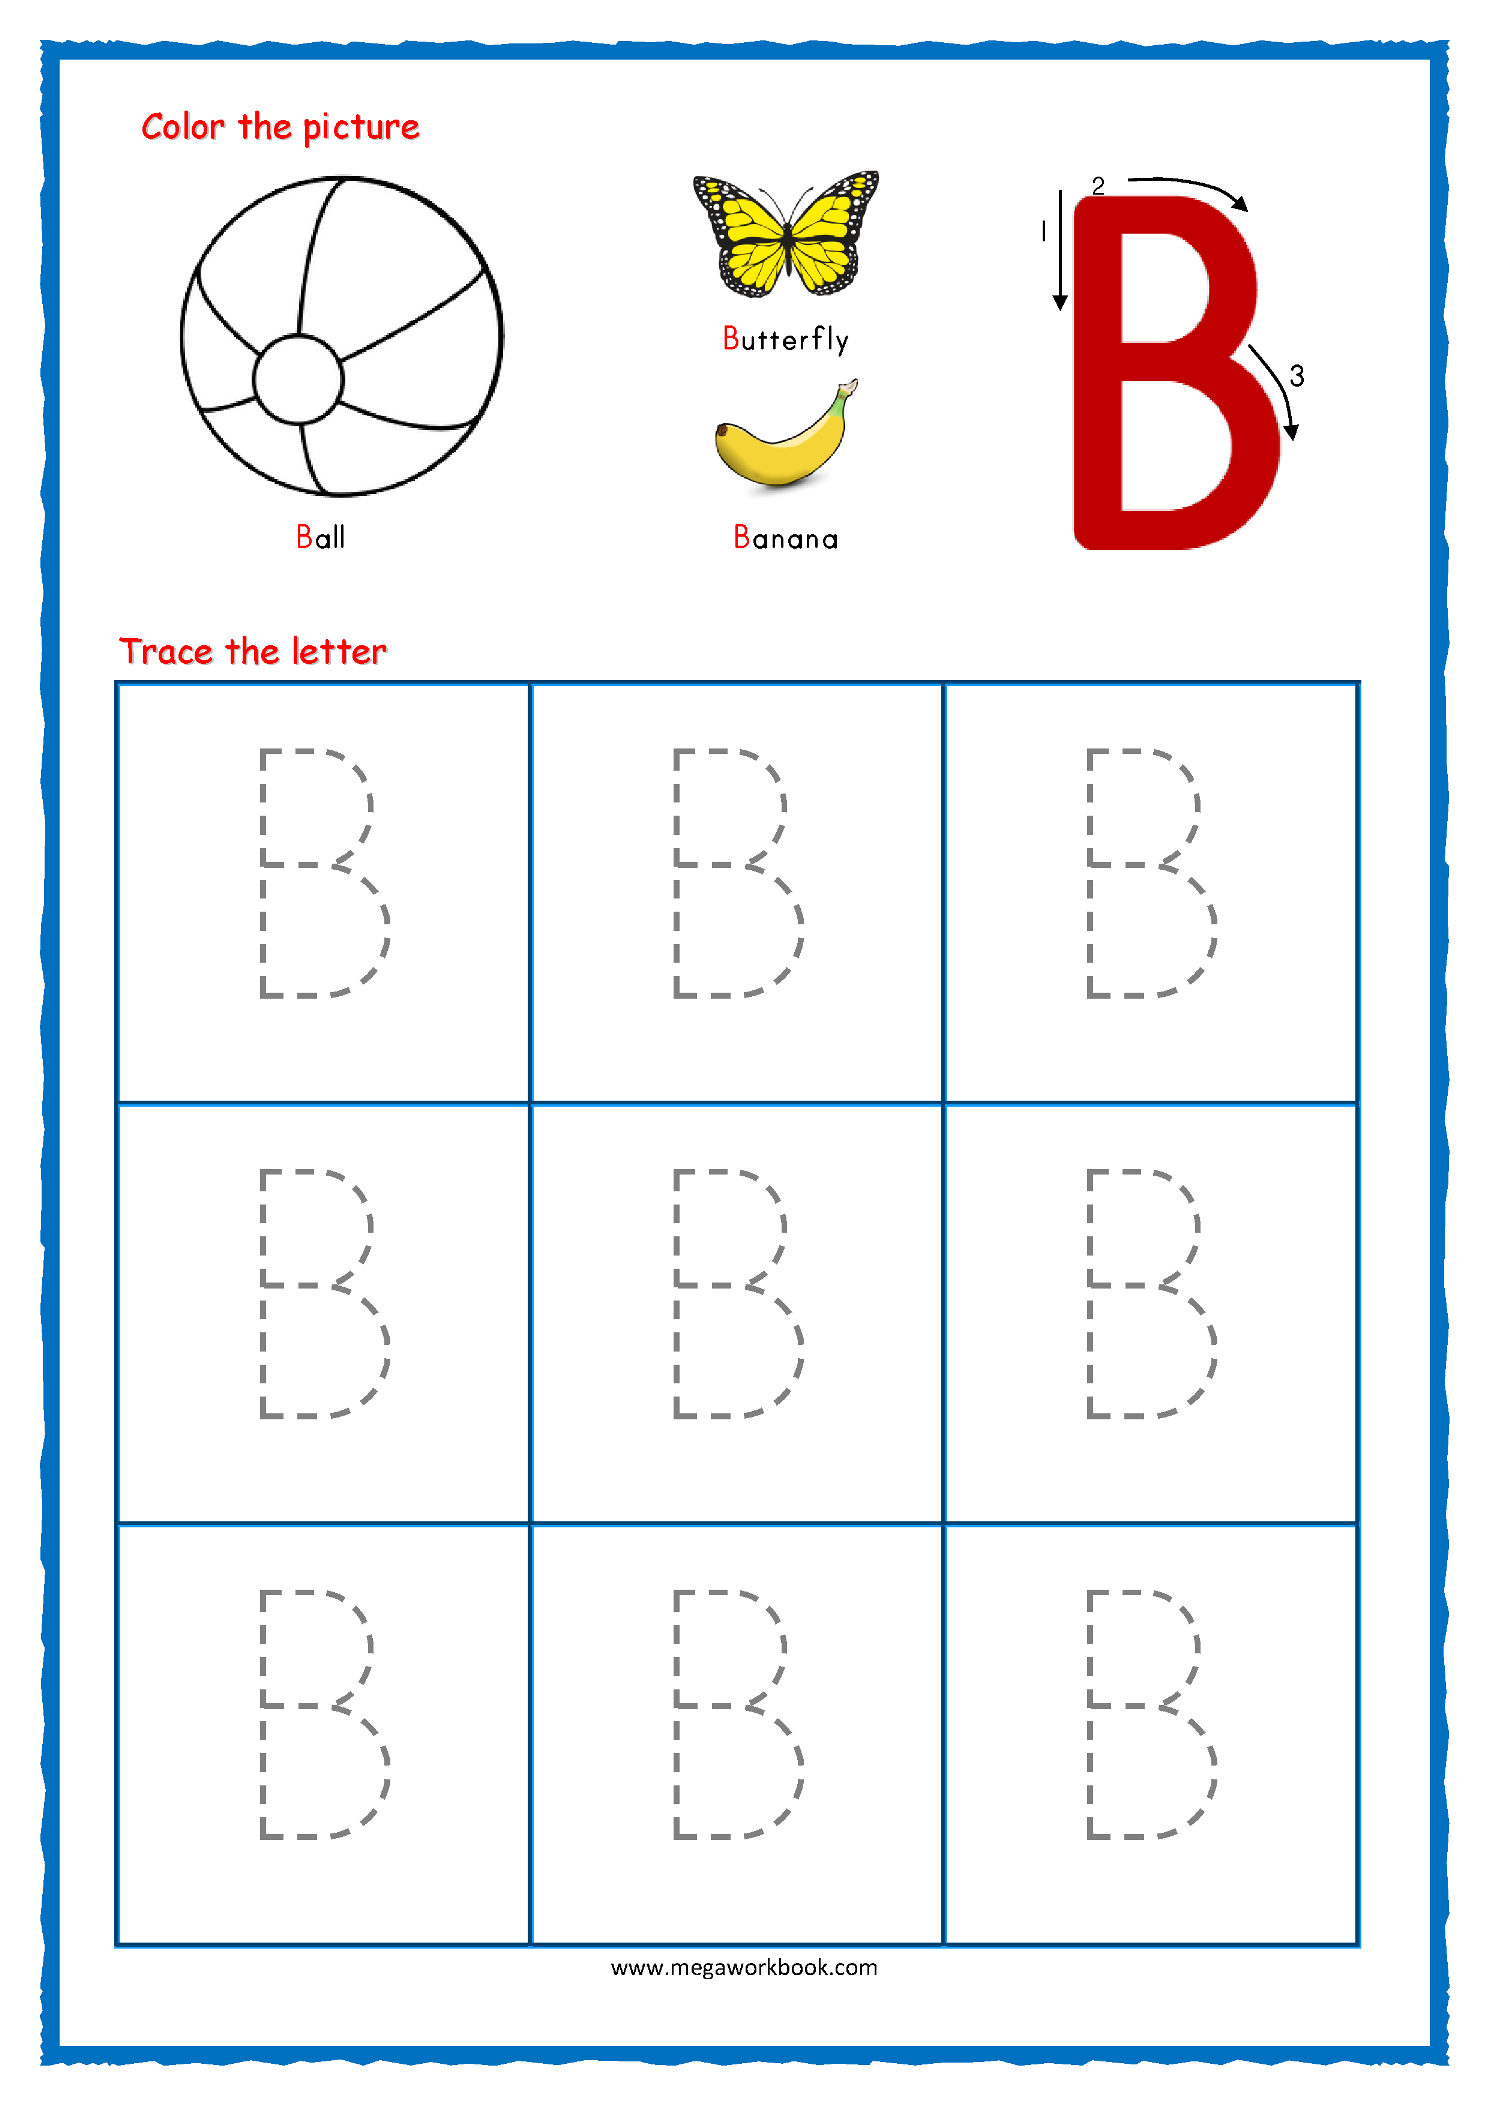 Capital_Letter_Tracing_With_Crayons_02_Alphabet_B Coloring inside Alphabet B Worksheets